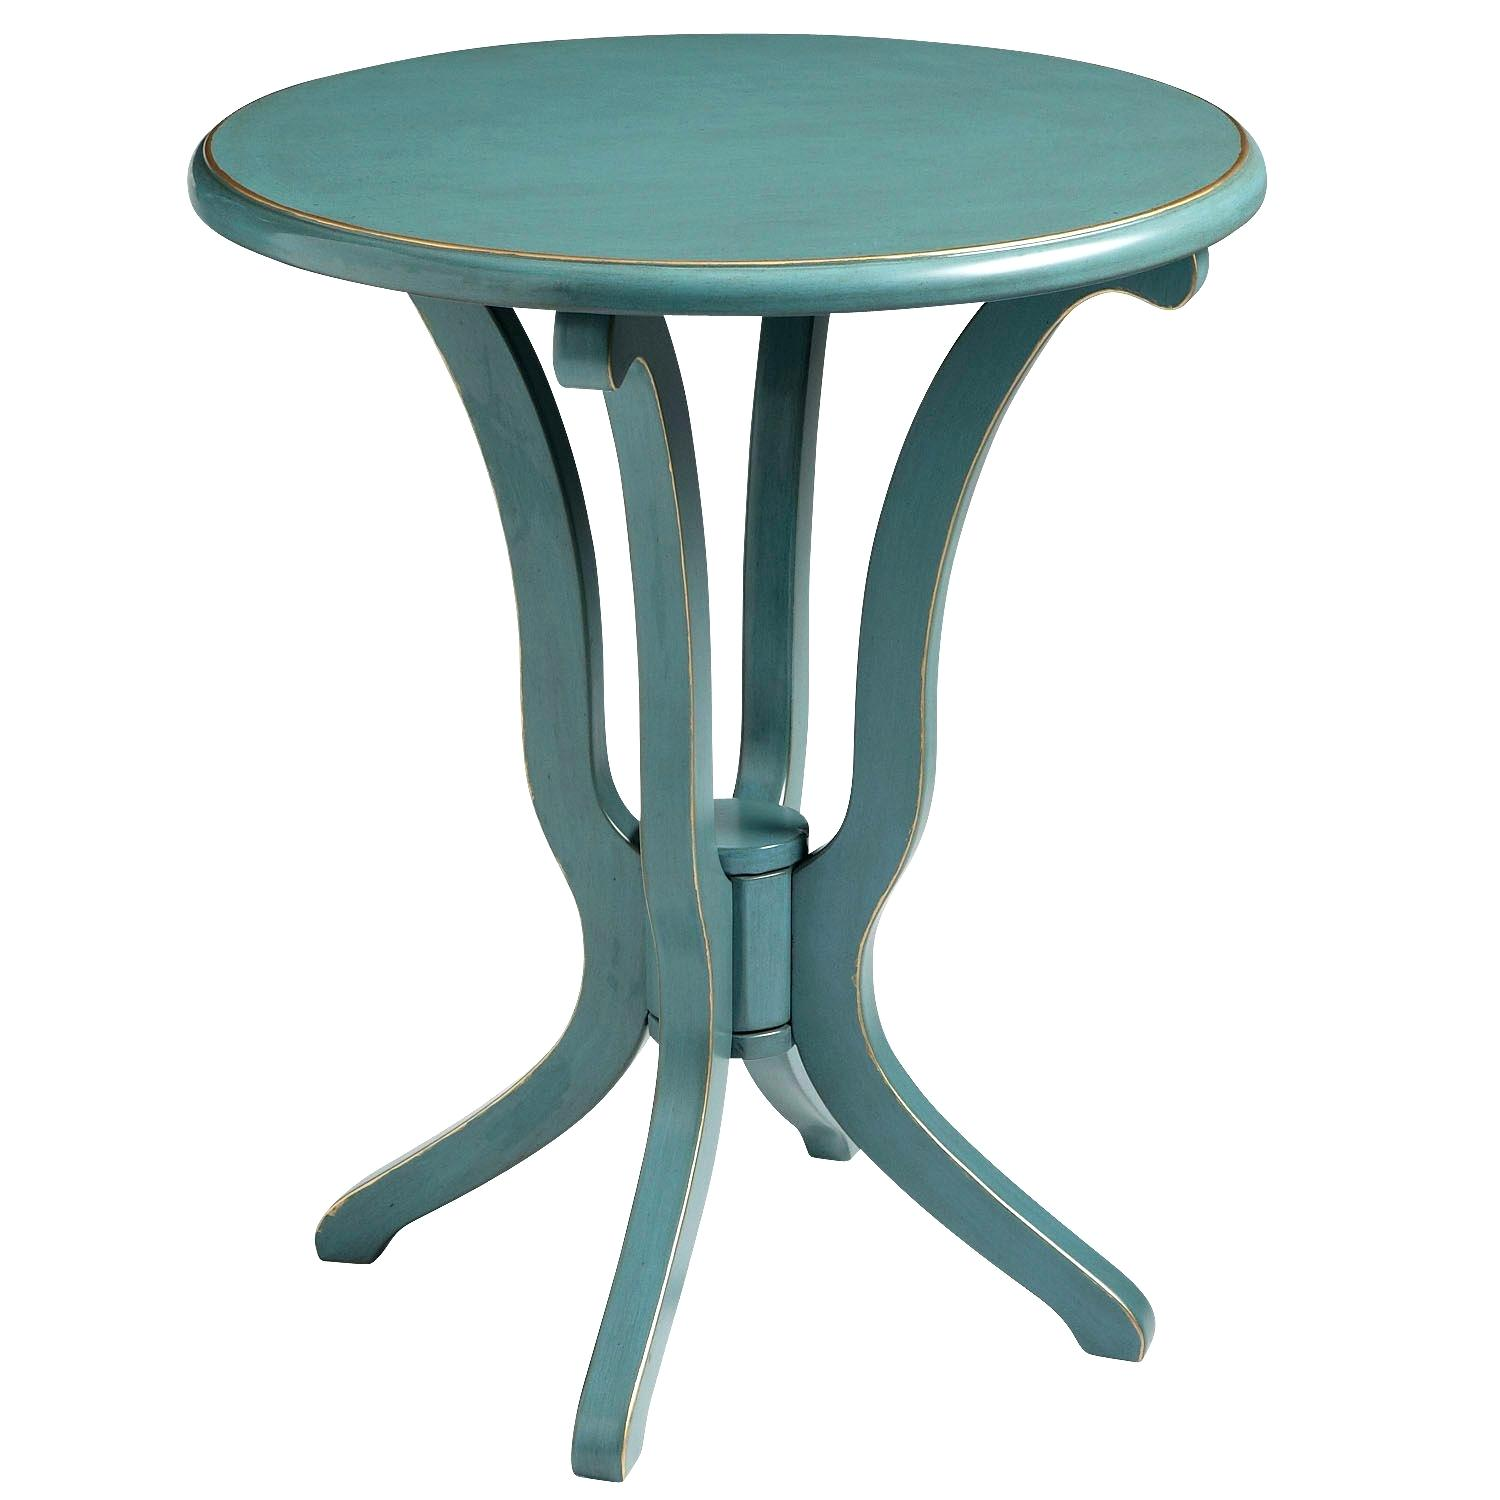 blue accent table navy medium size coffee save this item open gallery daffodil smoke mosaic outdoor side black glass target threshold furniture retro bedroom chair vinyl ellipsis